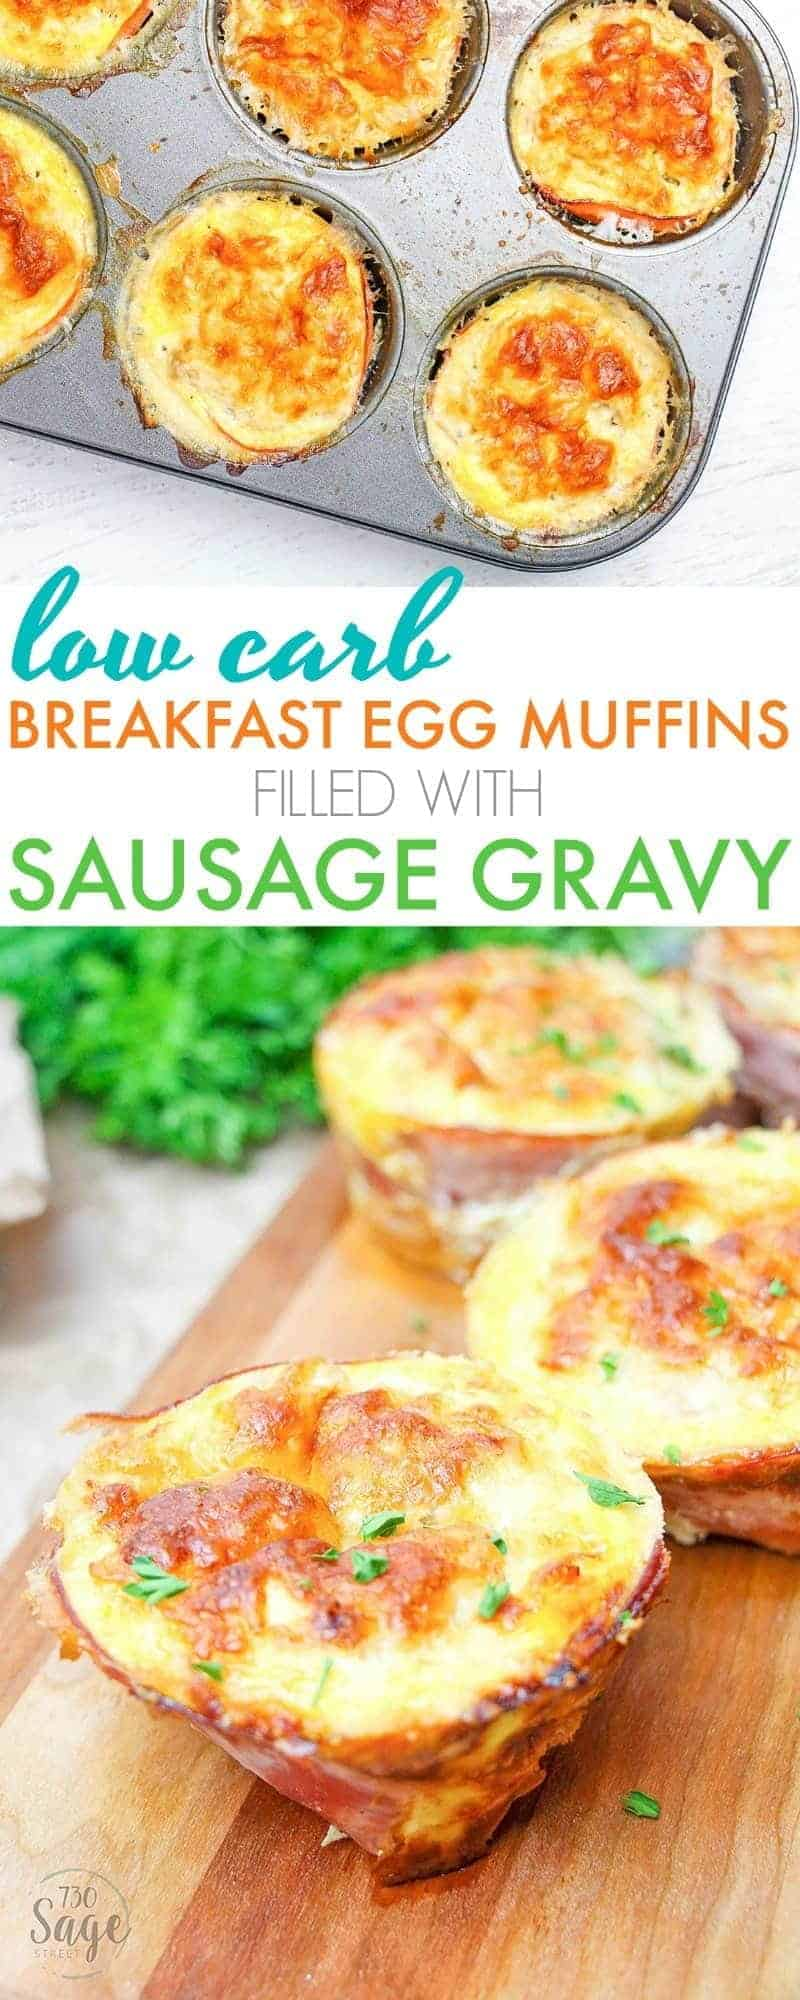 These low carb breakfast egg muffins are super easy to make and so delicious! Stuffed with yummy sausage gravy. Perfect to make ahead & reheat each morning for low carb & ketogenic diets.